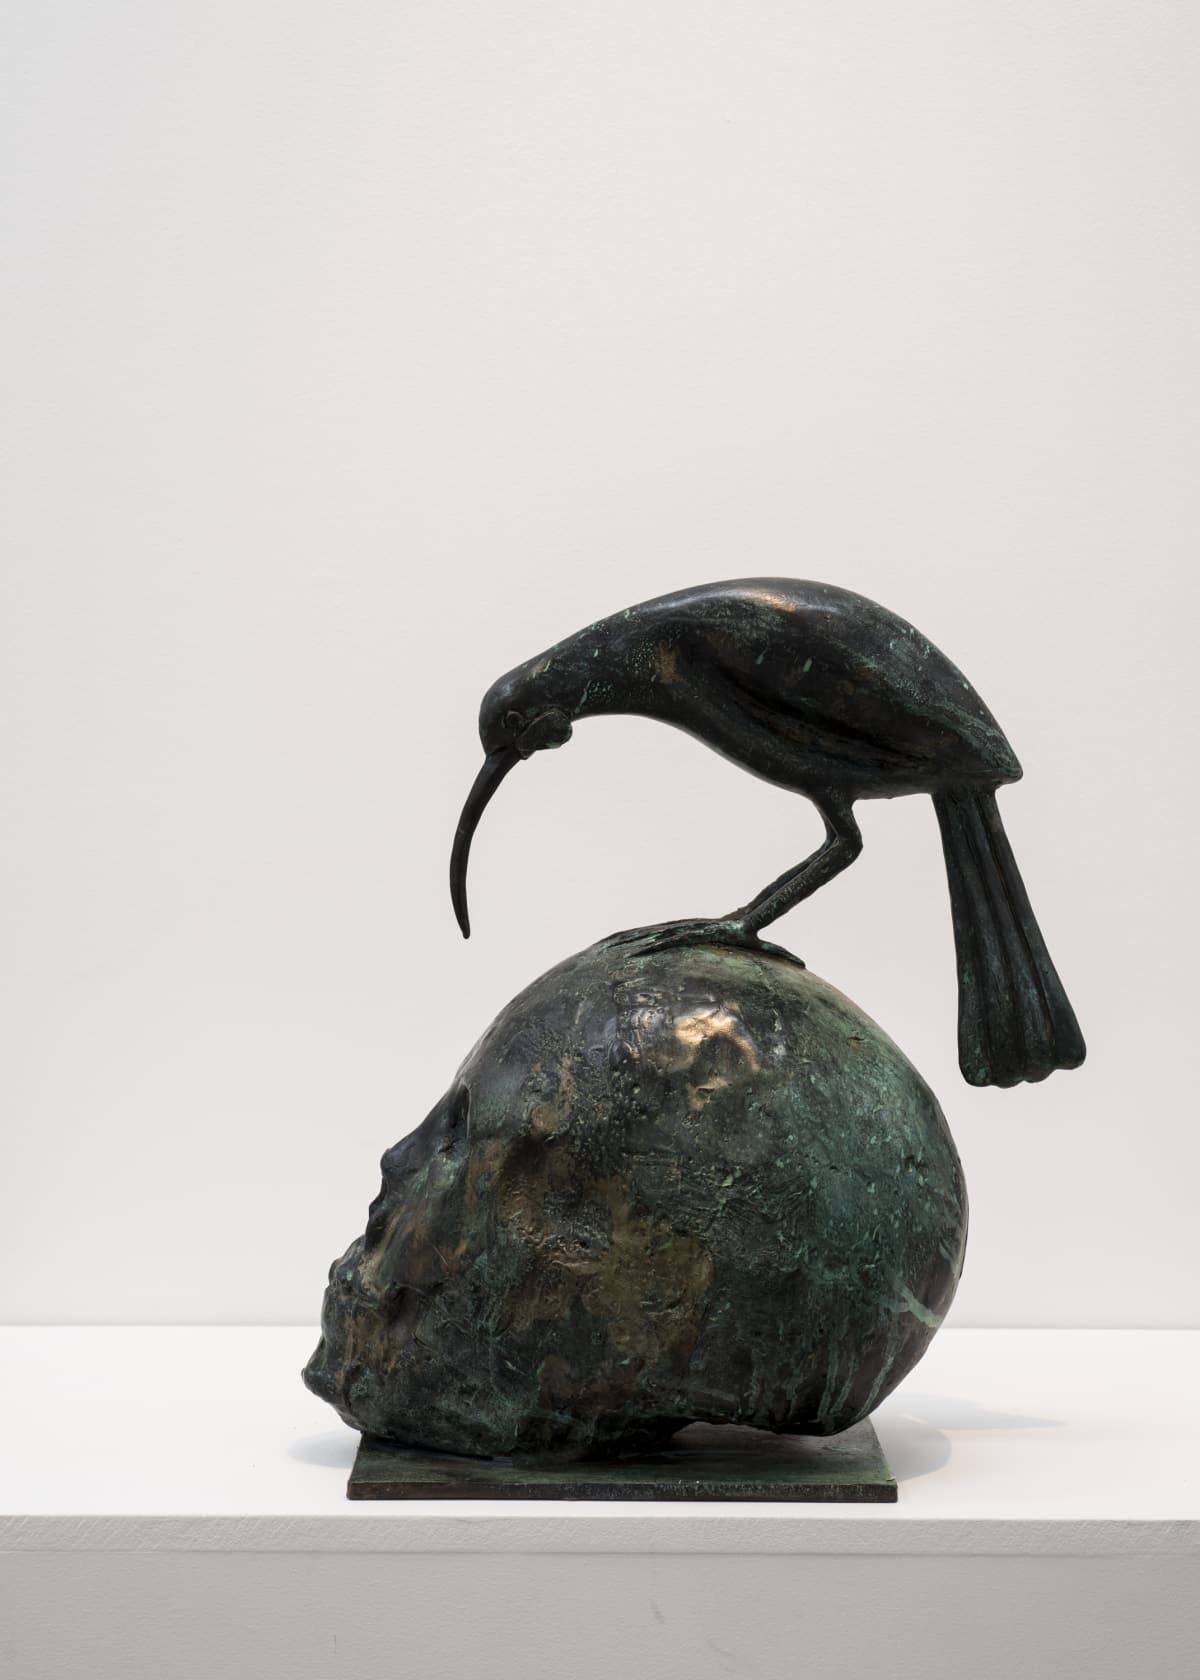 Paul DIBBLE Huia Talks to Death, 2017 Cast Patinated Bronze 16.9 x 15.7 x 7.9 in 43 x 40 x 20 cm